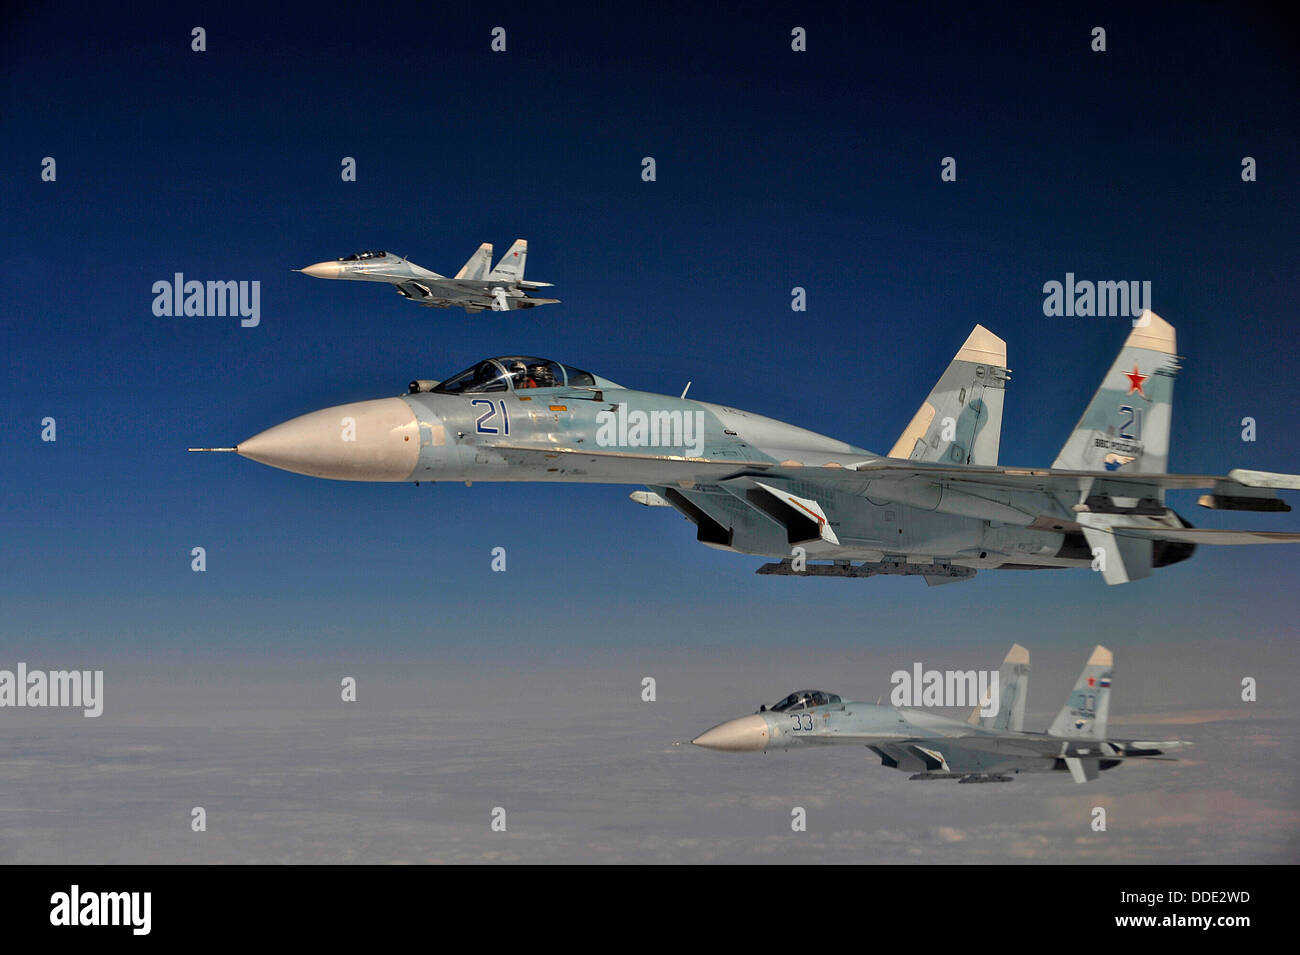 Russian Federation Air Force Su-27 fighter aircraft intercept a simulated hijacked aircraft during Exercise Vigilant - Stock Image